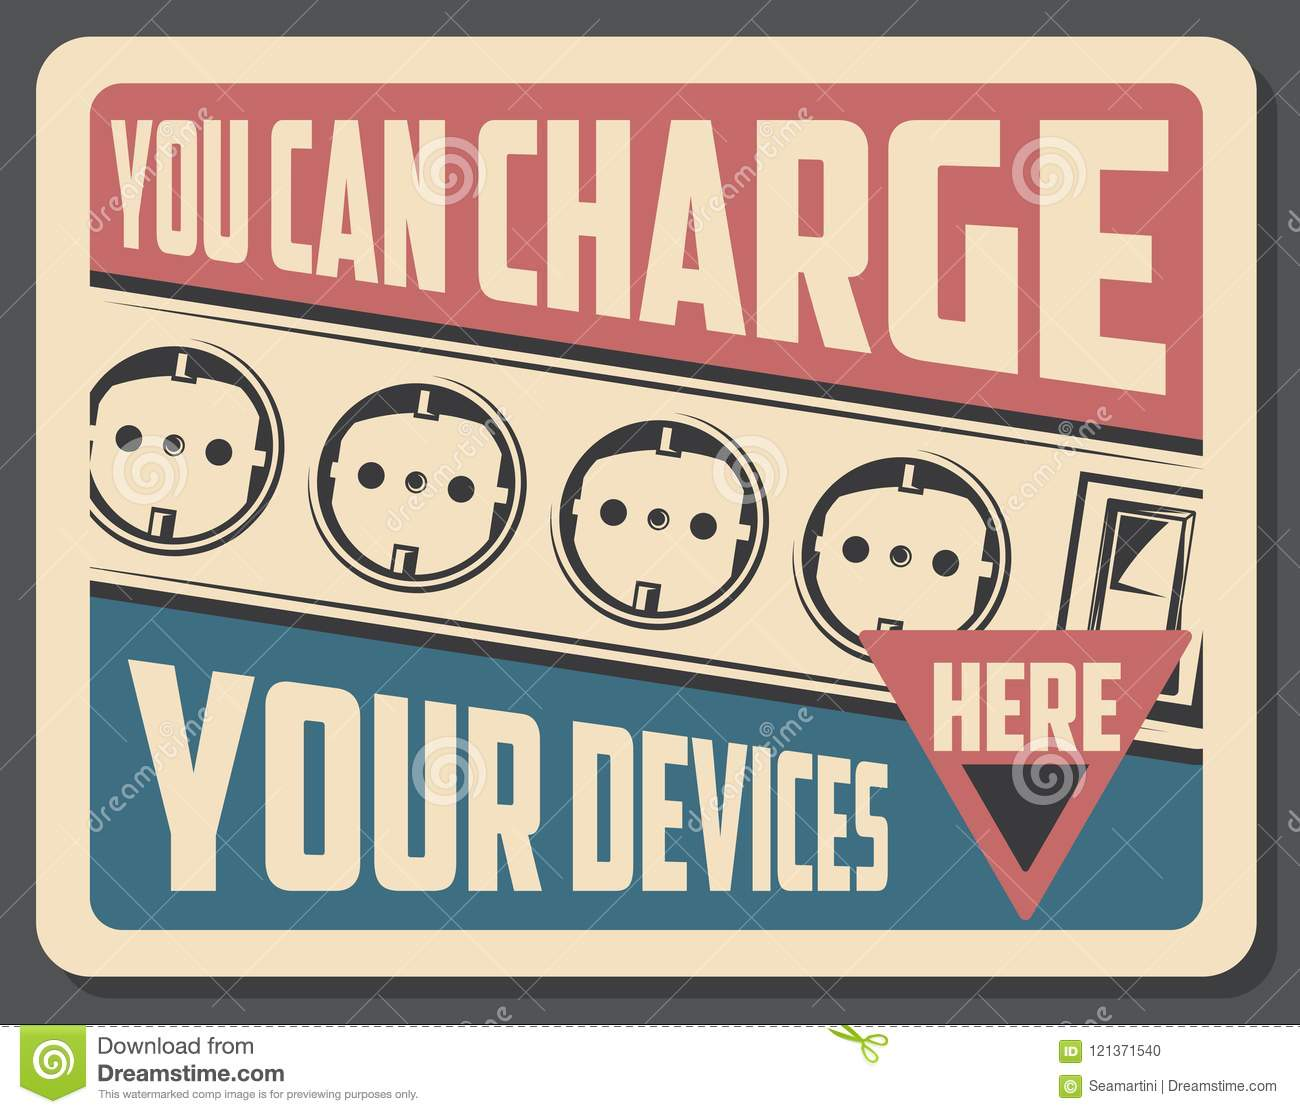 Charge Device Retro Poster With Sockets Stock Vector Illustration Wiring Outlets And Switches Electrical Outlet Electricity Vintage Placard Electric Gadgets Appliances Store Or Shop Advertisement